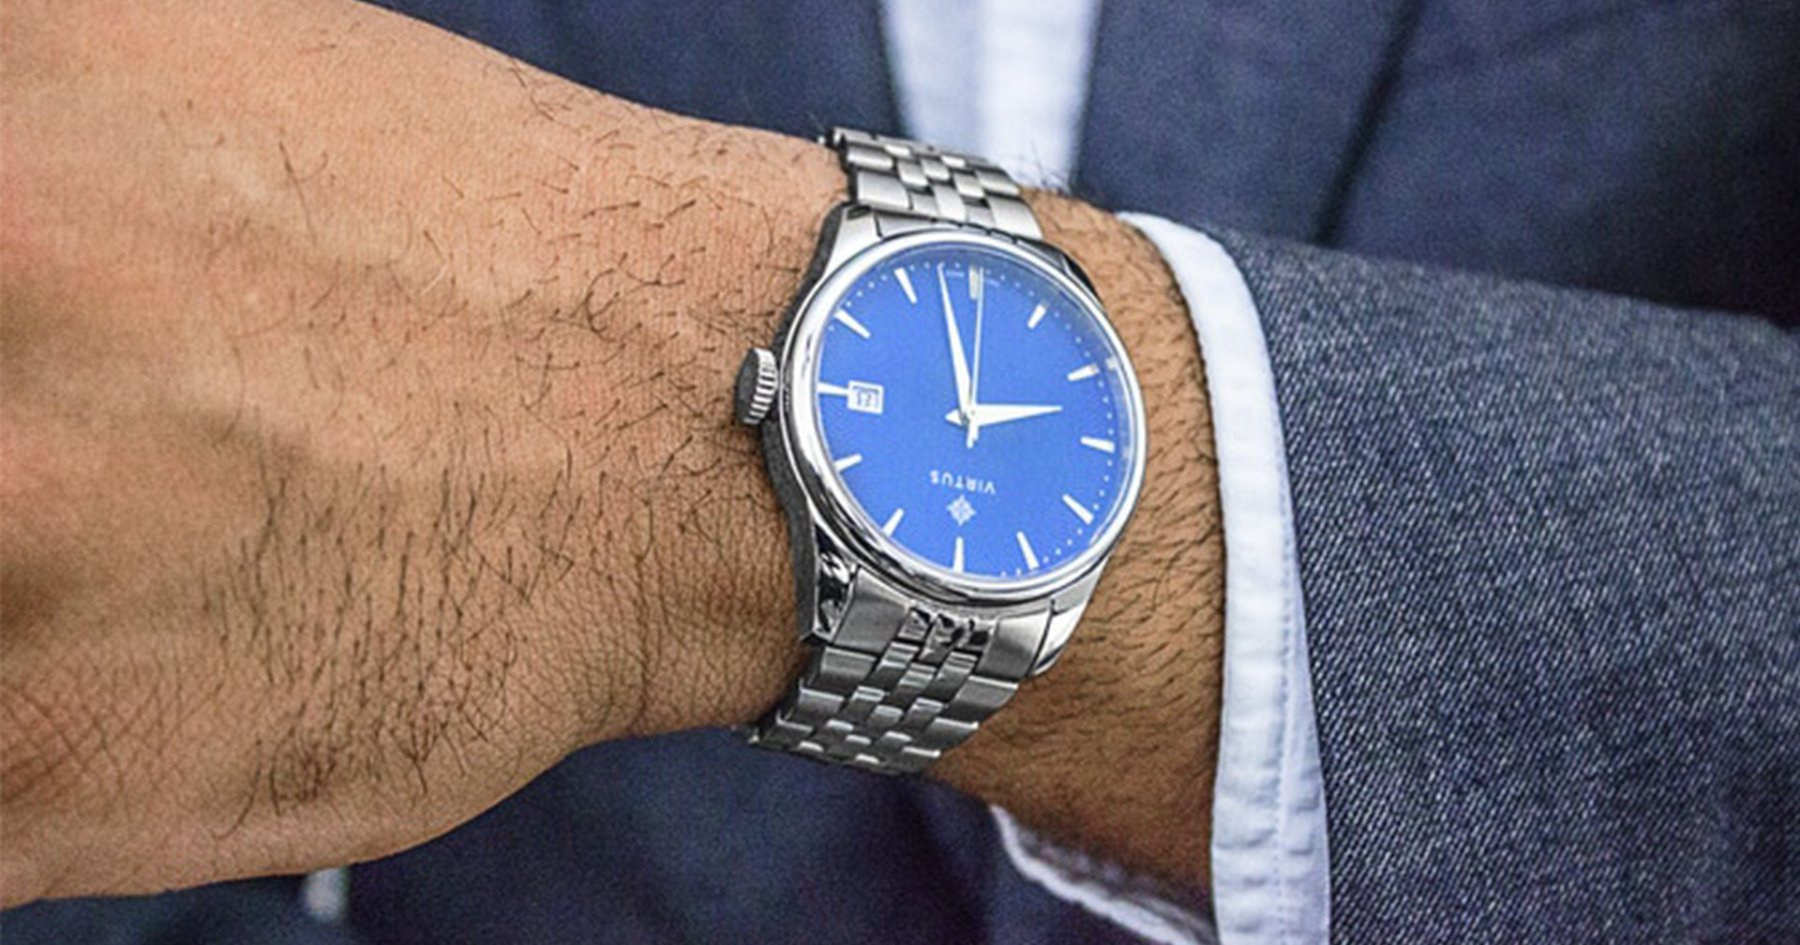 The Virtus V1 Is an Affordable Swiss-Made Watch by a Local Company